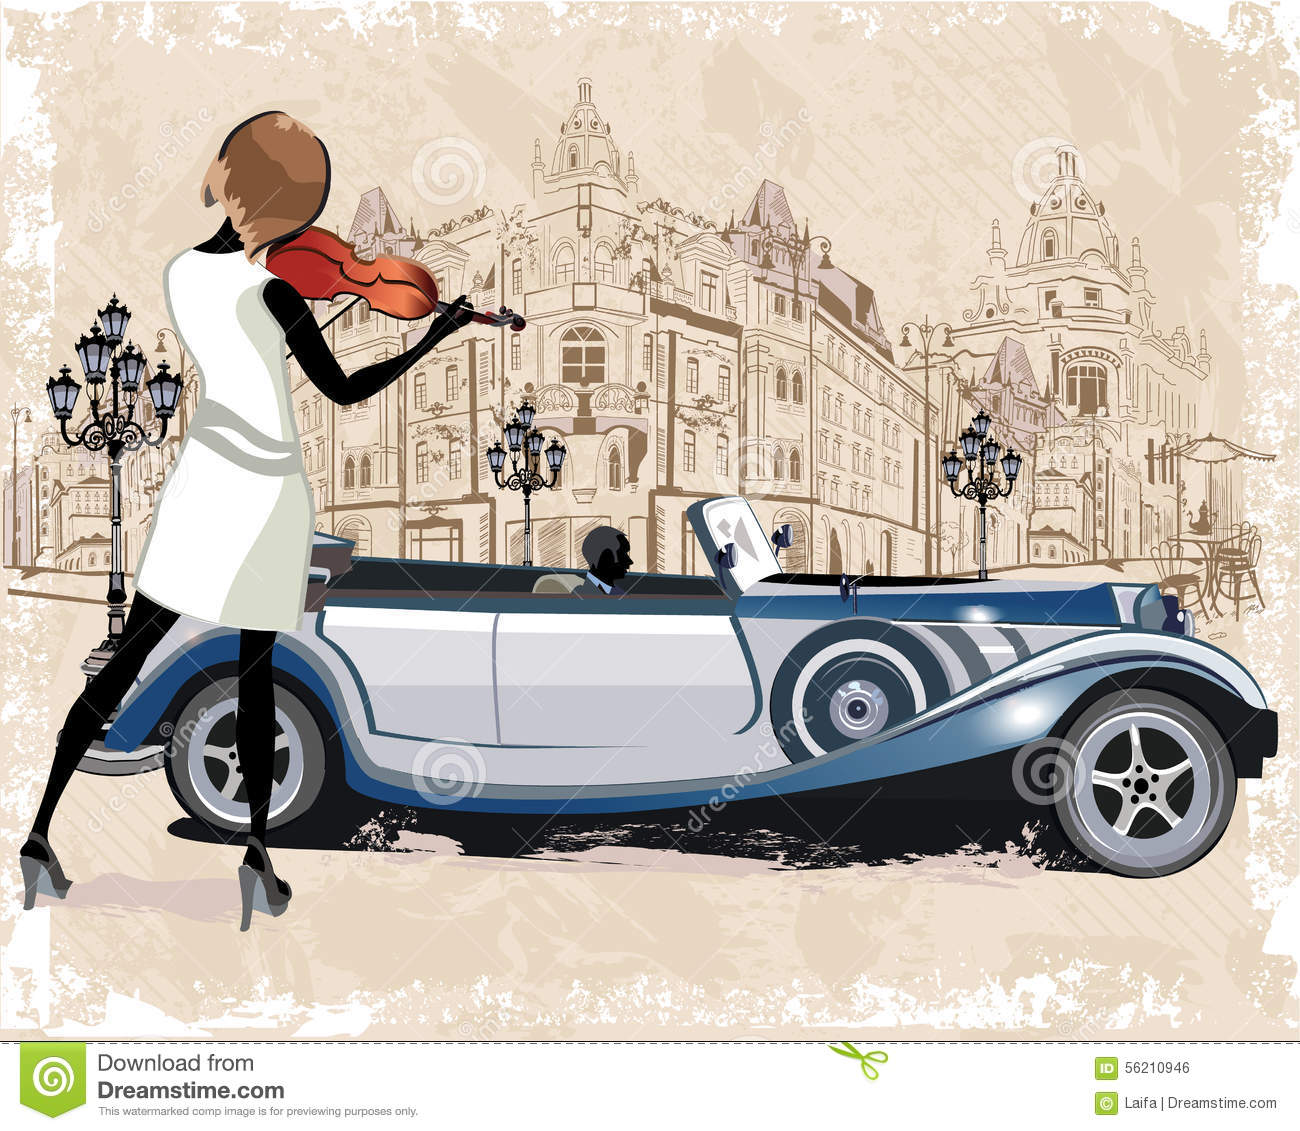 Series of vintage backgrounds decorated with retro cars, musicians, old town views and street cafes.